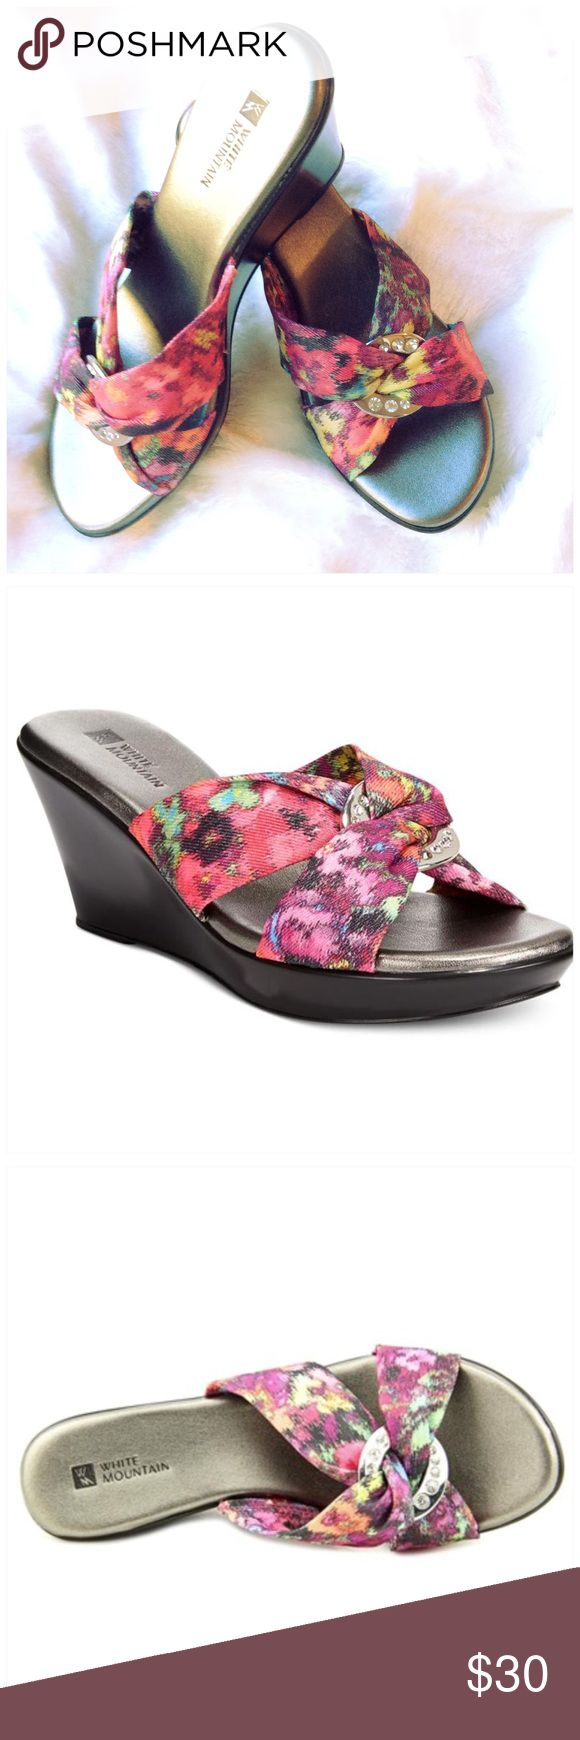 "WHITE MOUNTAIN SHOES Fuschia multi floral print. Has a slight metallic sheen. 2.75"" heel. Very comfortable. New in box White Mountain  Shoes Wedges"